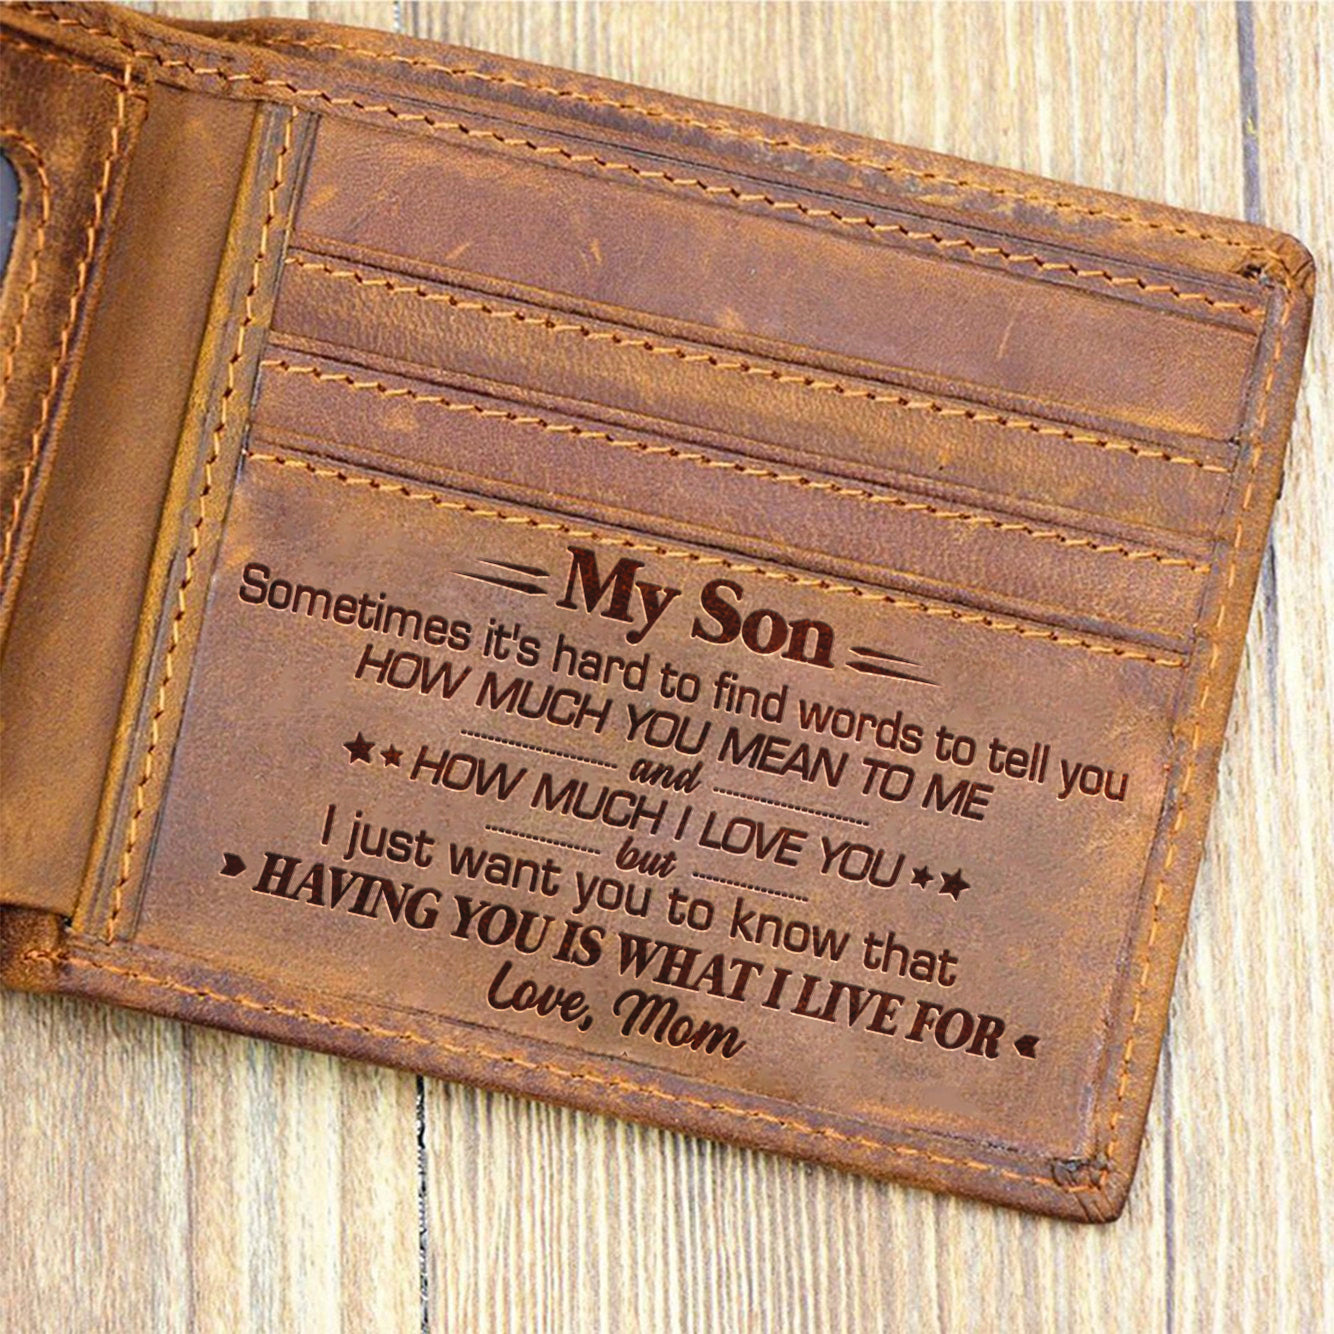 Mom To Son - Having You Is What I Live For - Bifold Wallet